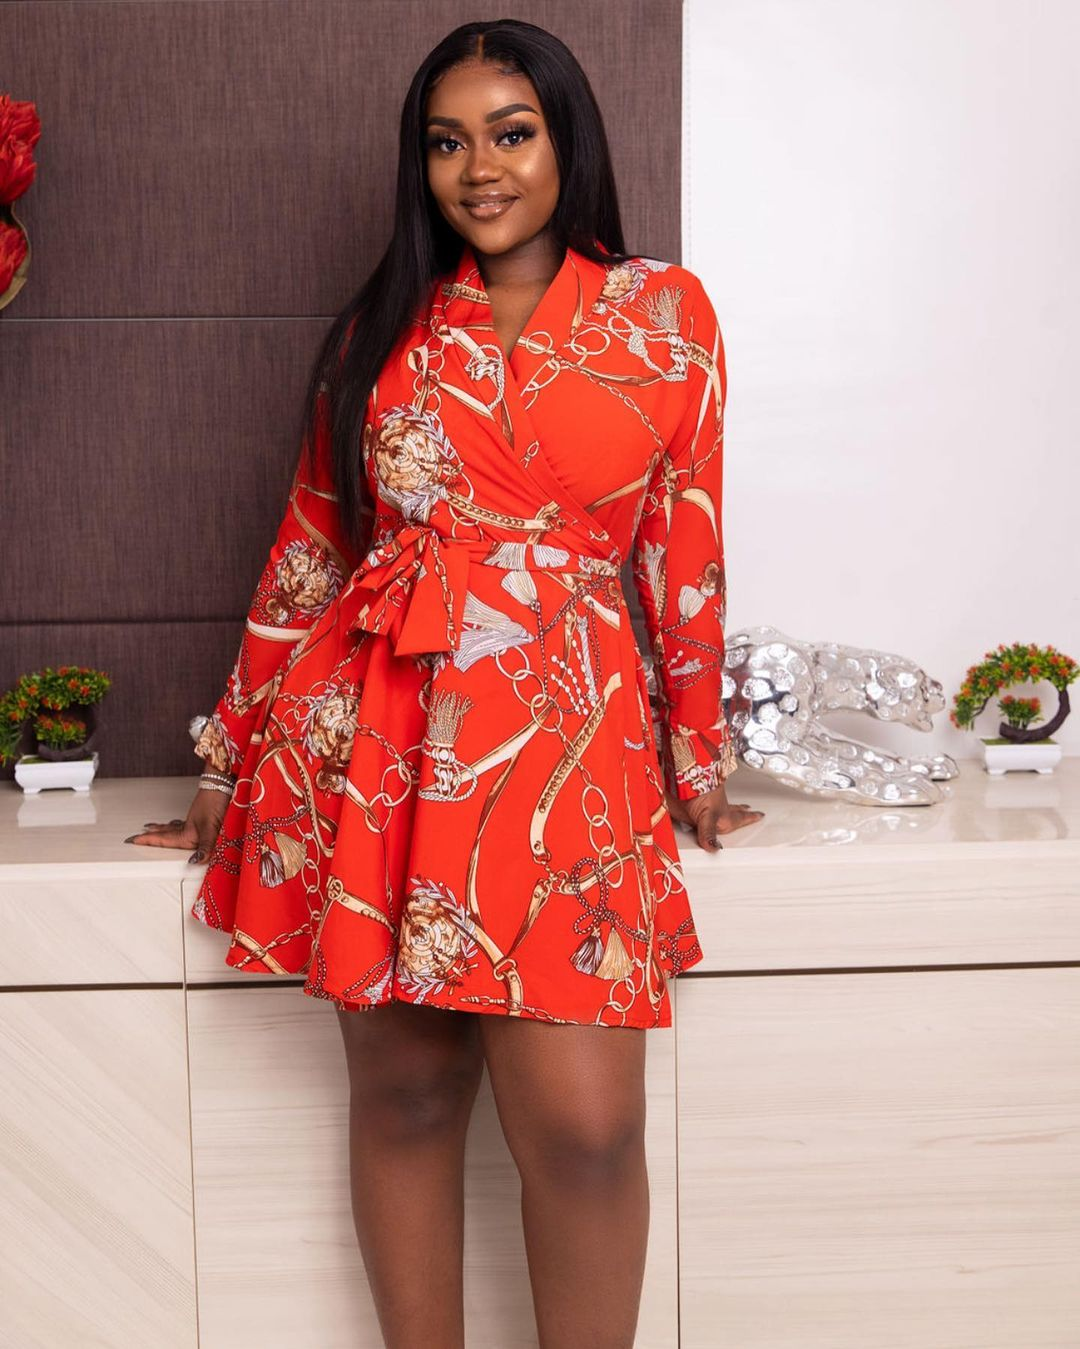 Chioma Rowland shows off